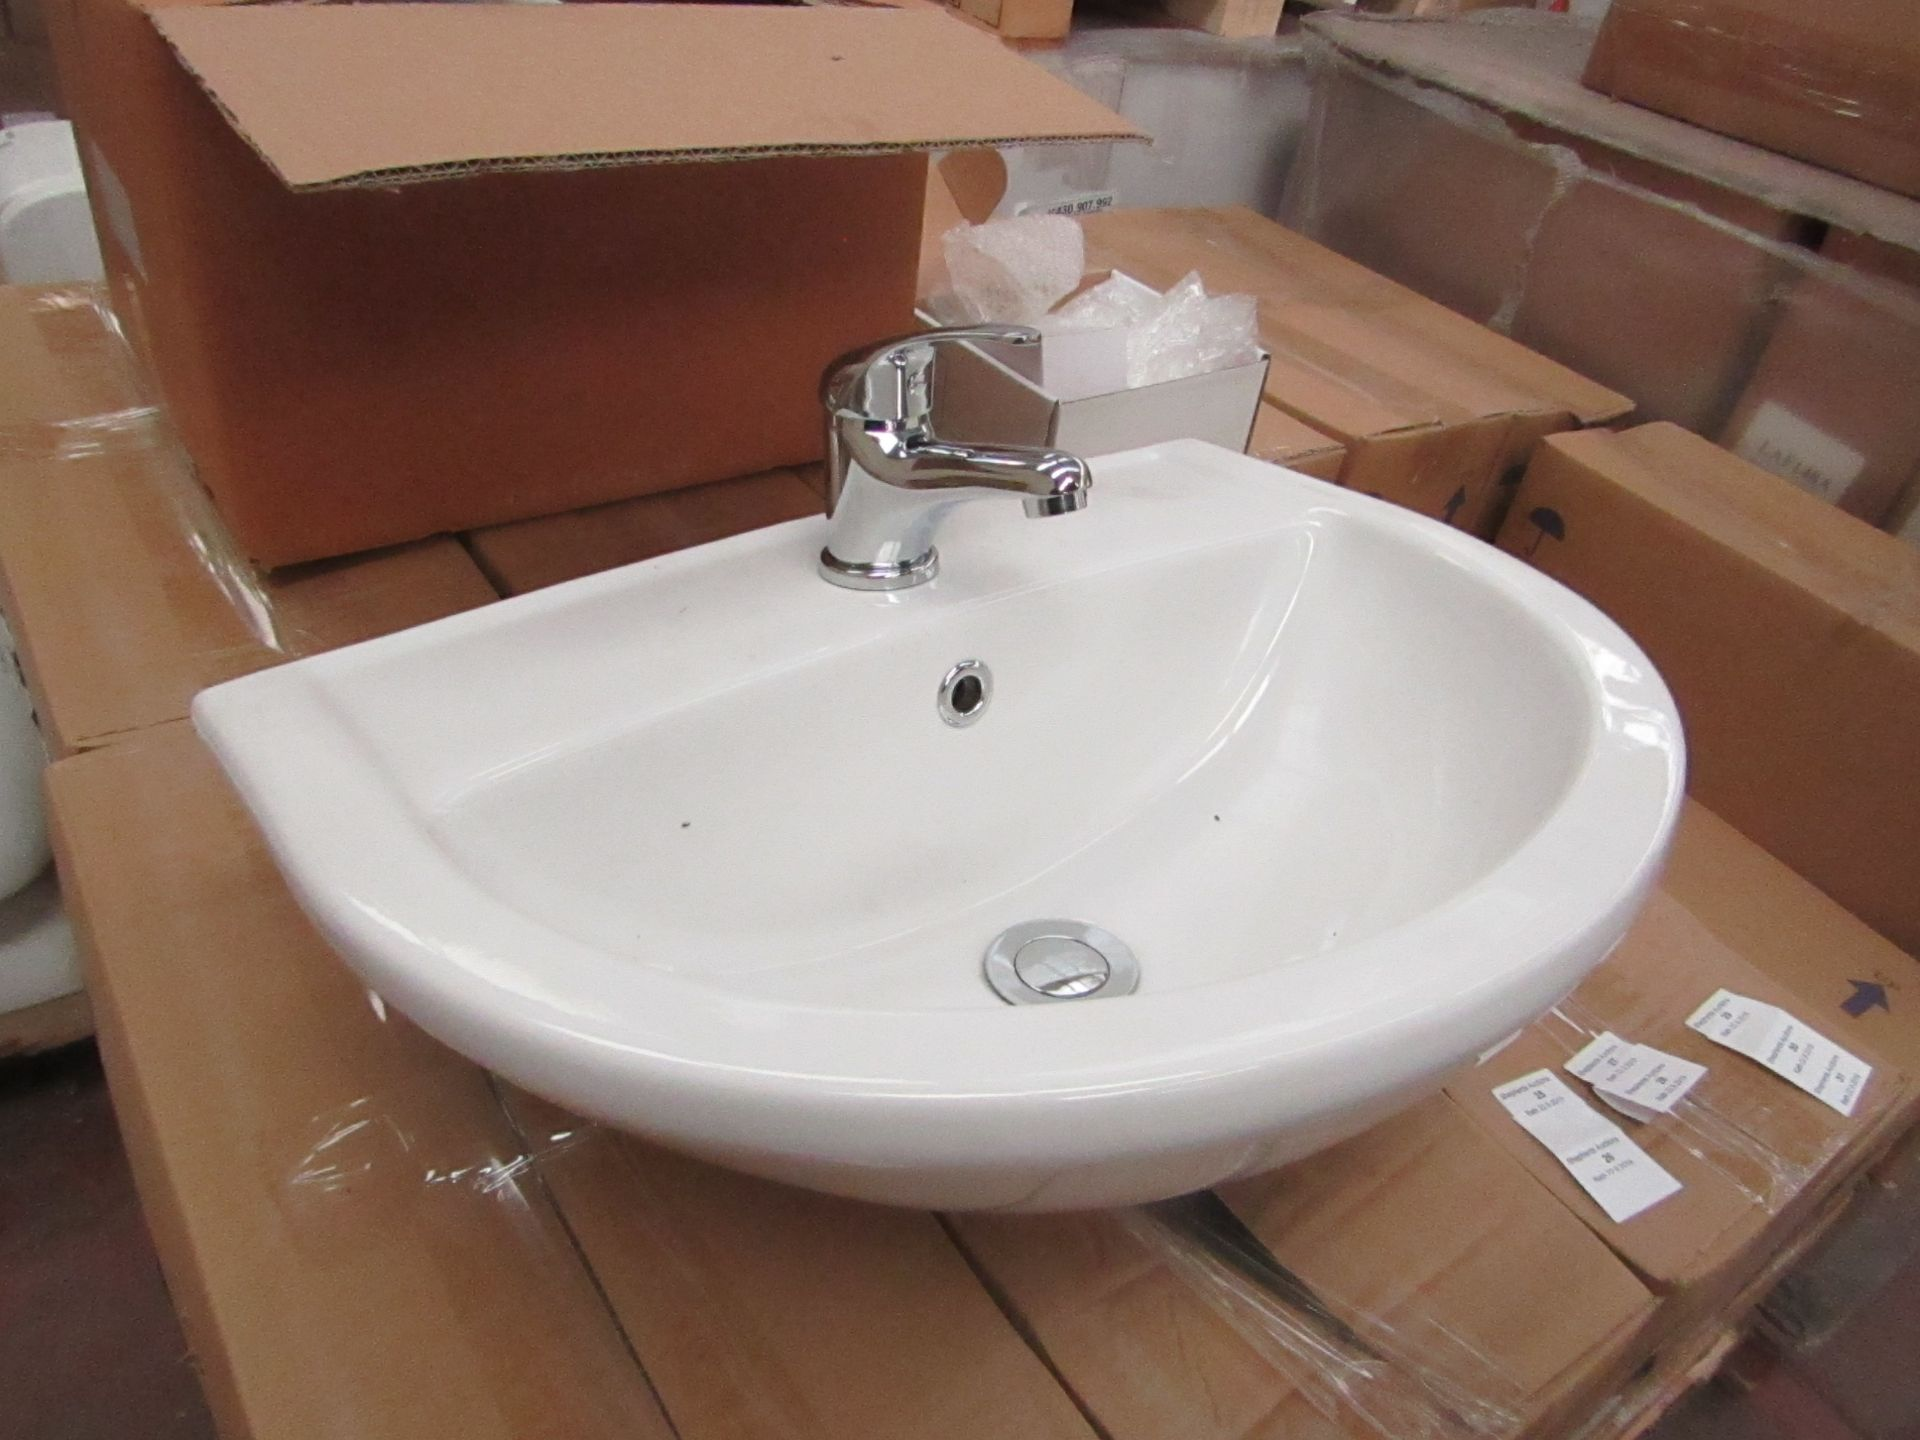 Lecico Remini 50cm 1 tap hole sink with mono block mixer tap, boxed and new